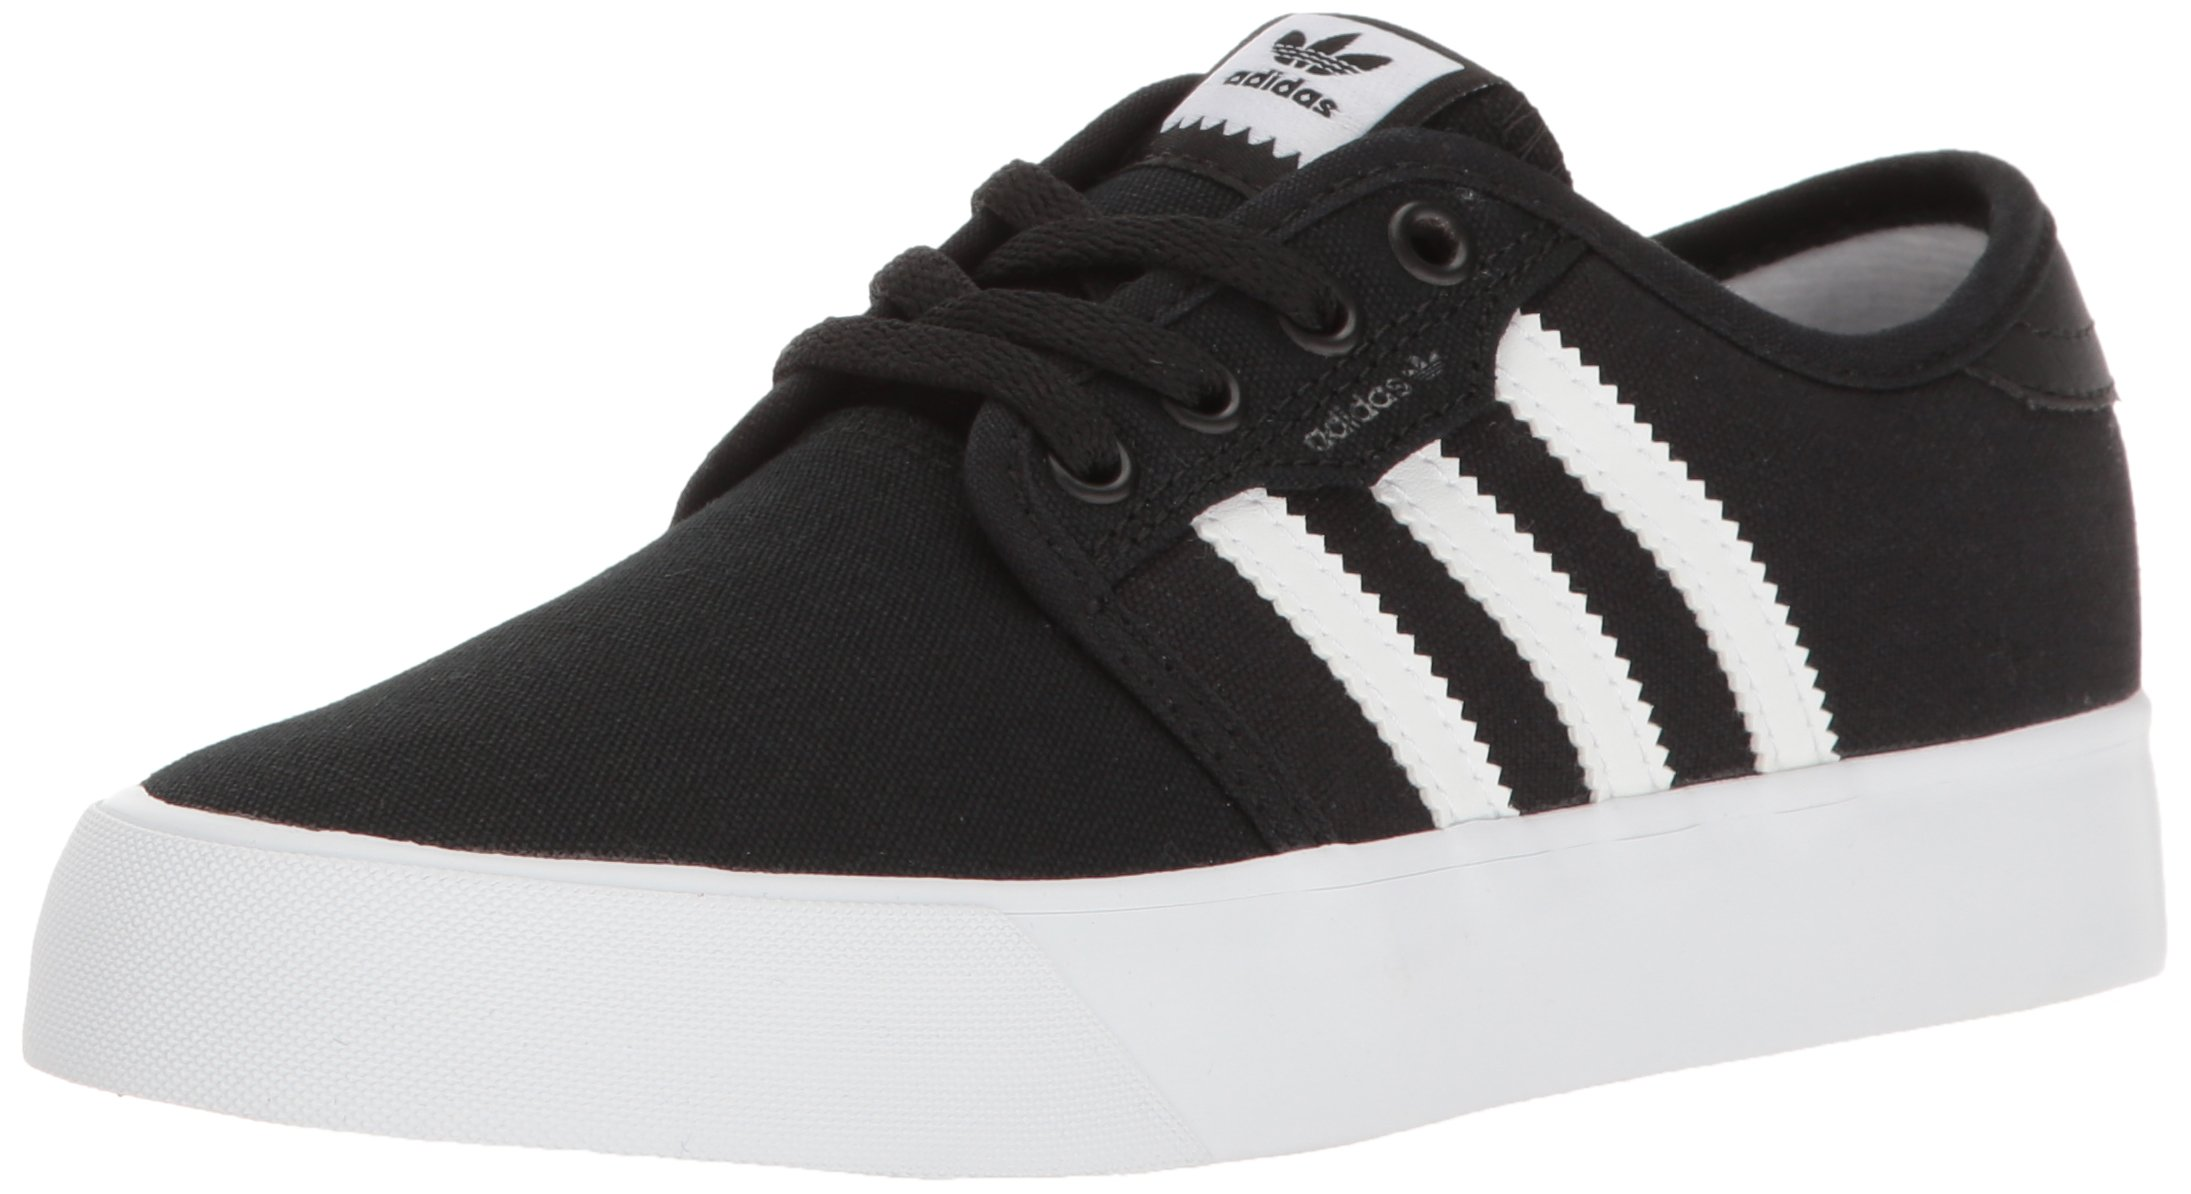 adidas Originals Unisex Seeley Running Shoe, Black White, 7 M US Big Kid